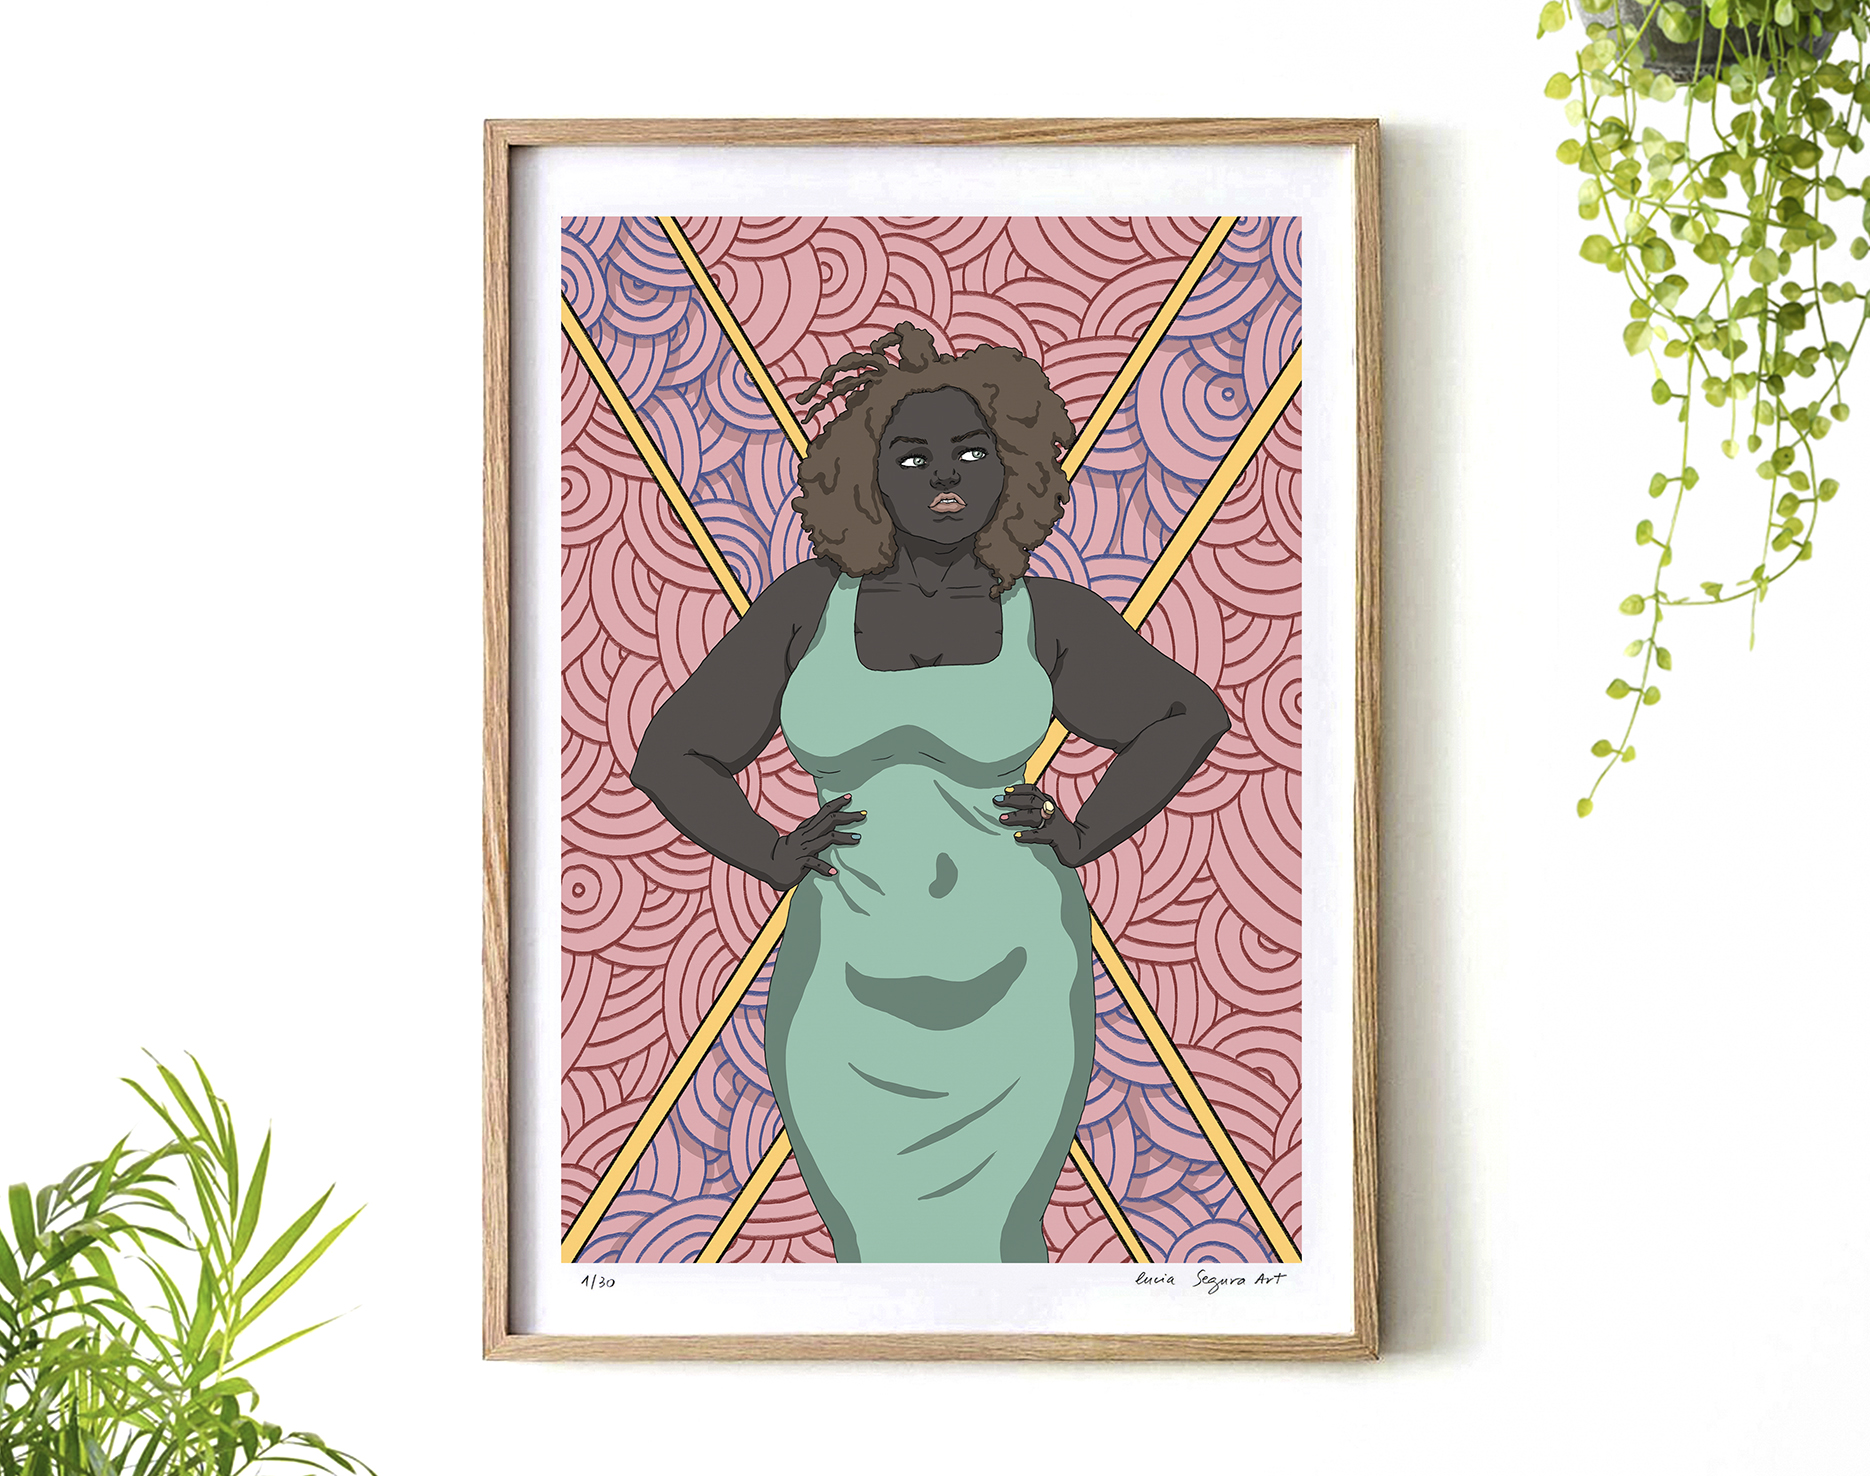 Artwork Here I am with a wood frame hanging on a wall surrounded by green plants. The digital painting is full of color and shows an empowered woman with a big size body but very stylish and confident. Lucia Segura Art.